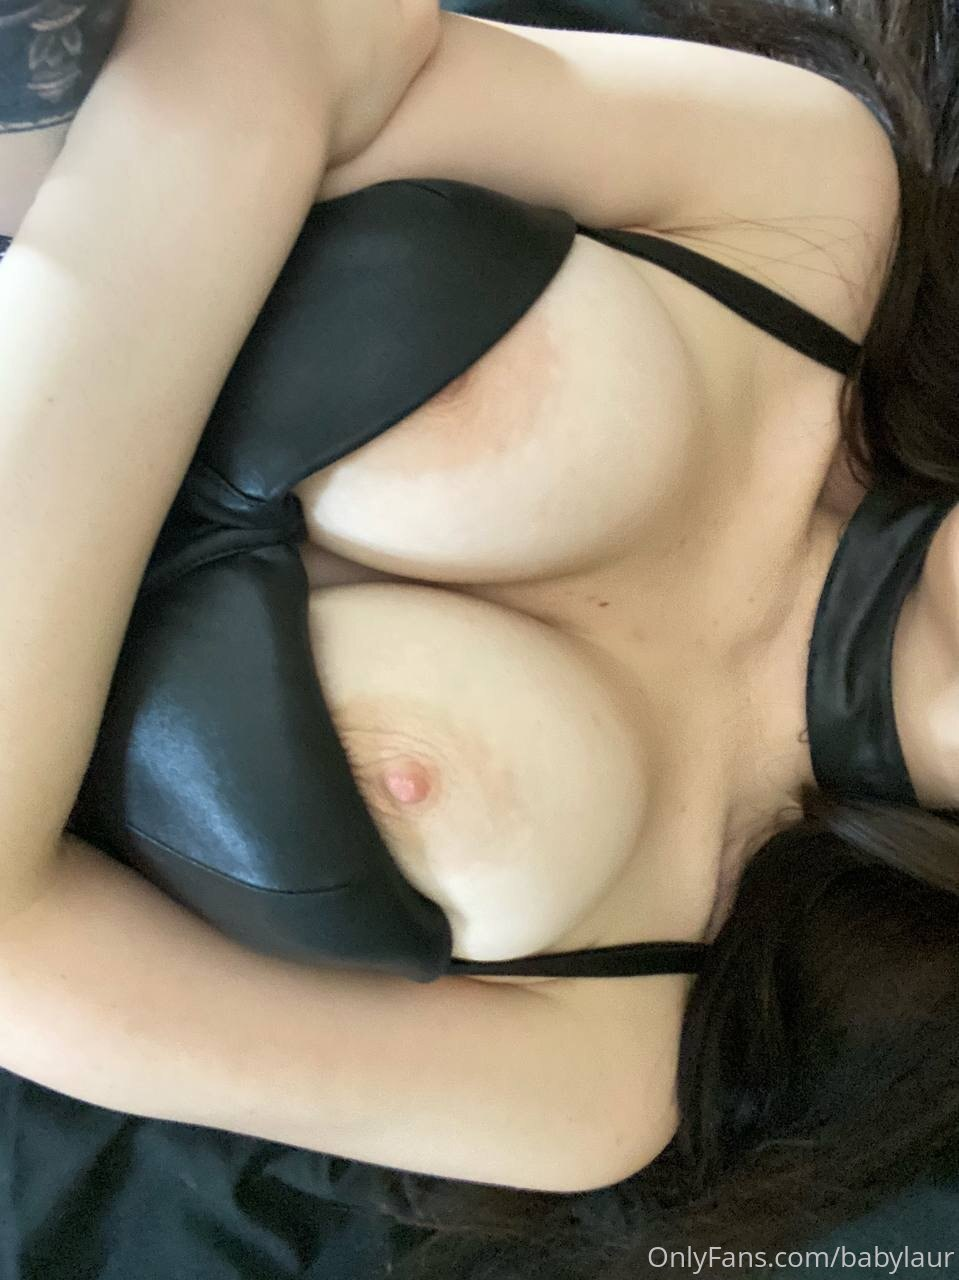 Baby Laur Porn OnlyFans Leaked Nudes 75